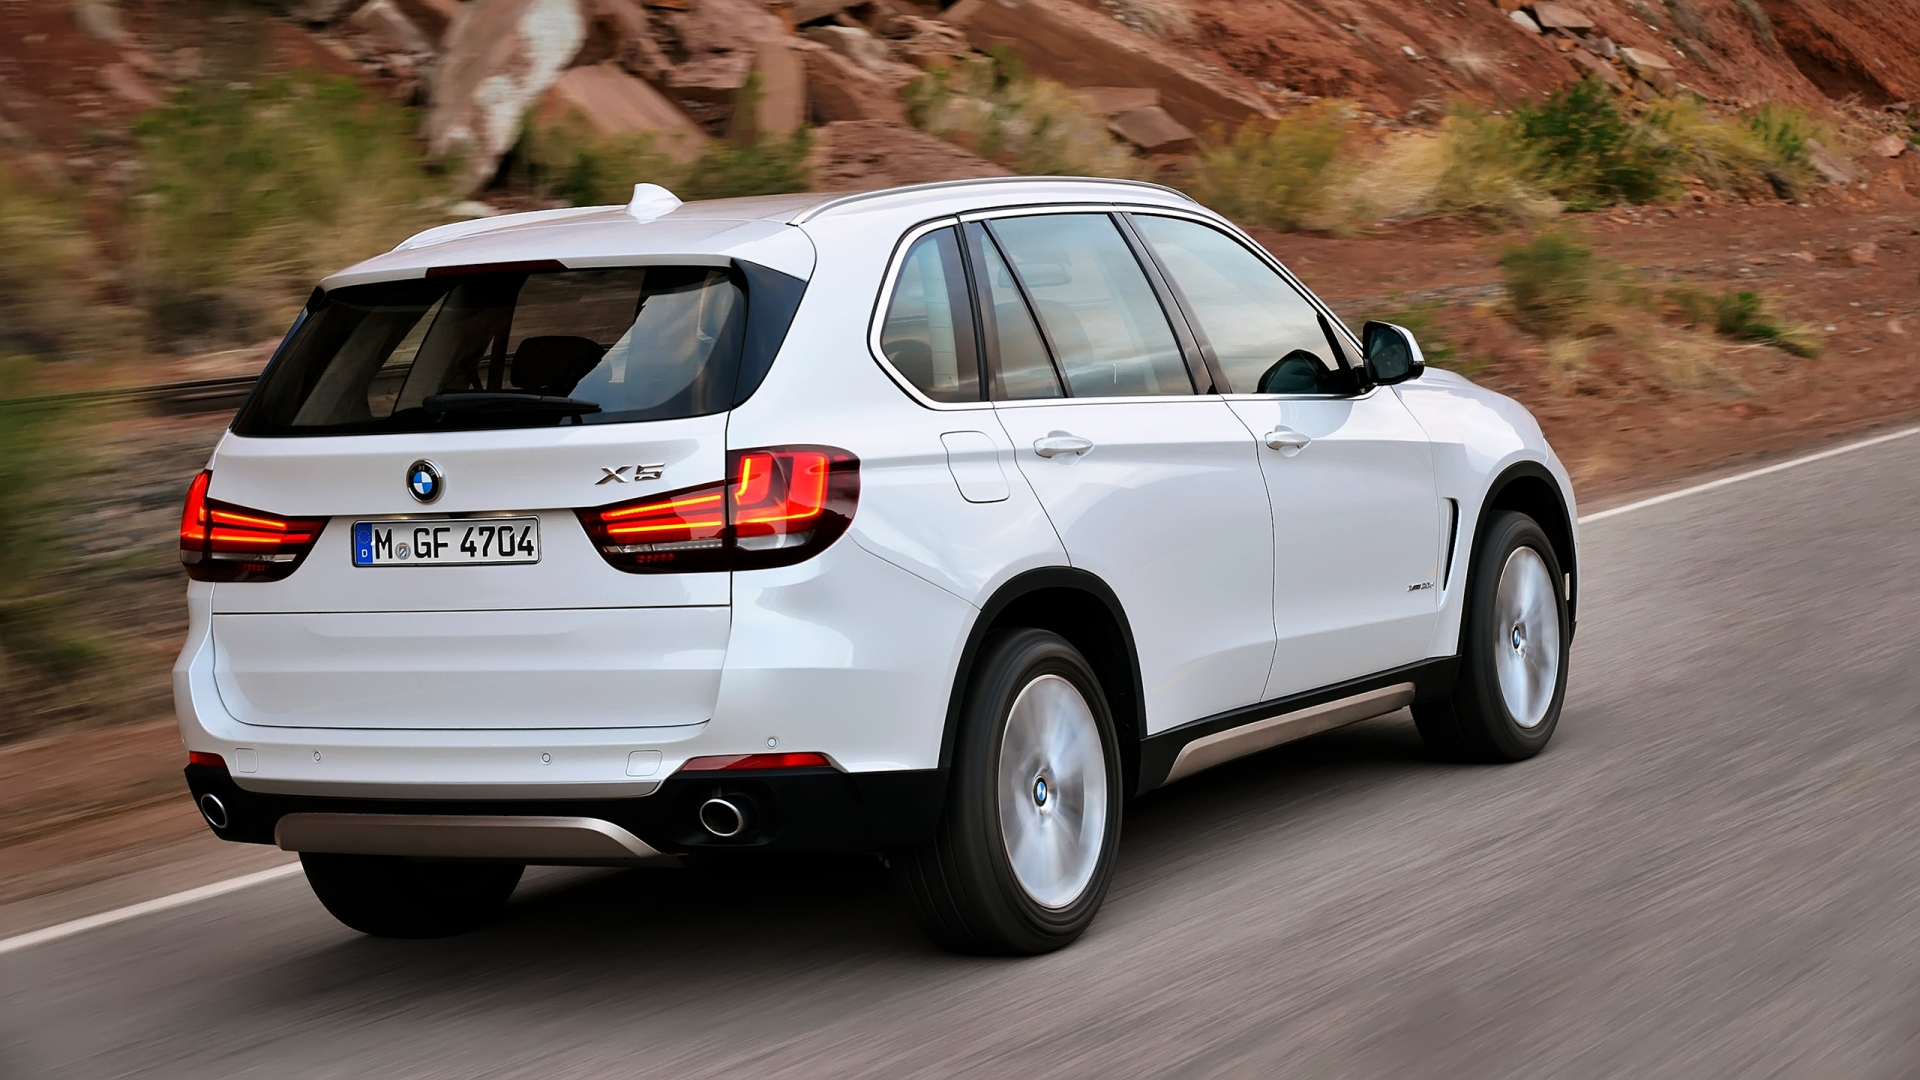 2014 BMW X5 Rear for 1920 x 1080 HDTV 1080p resolution